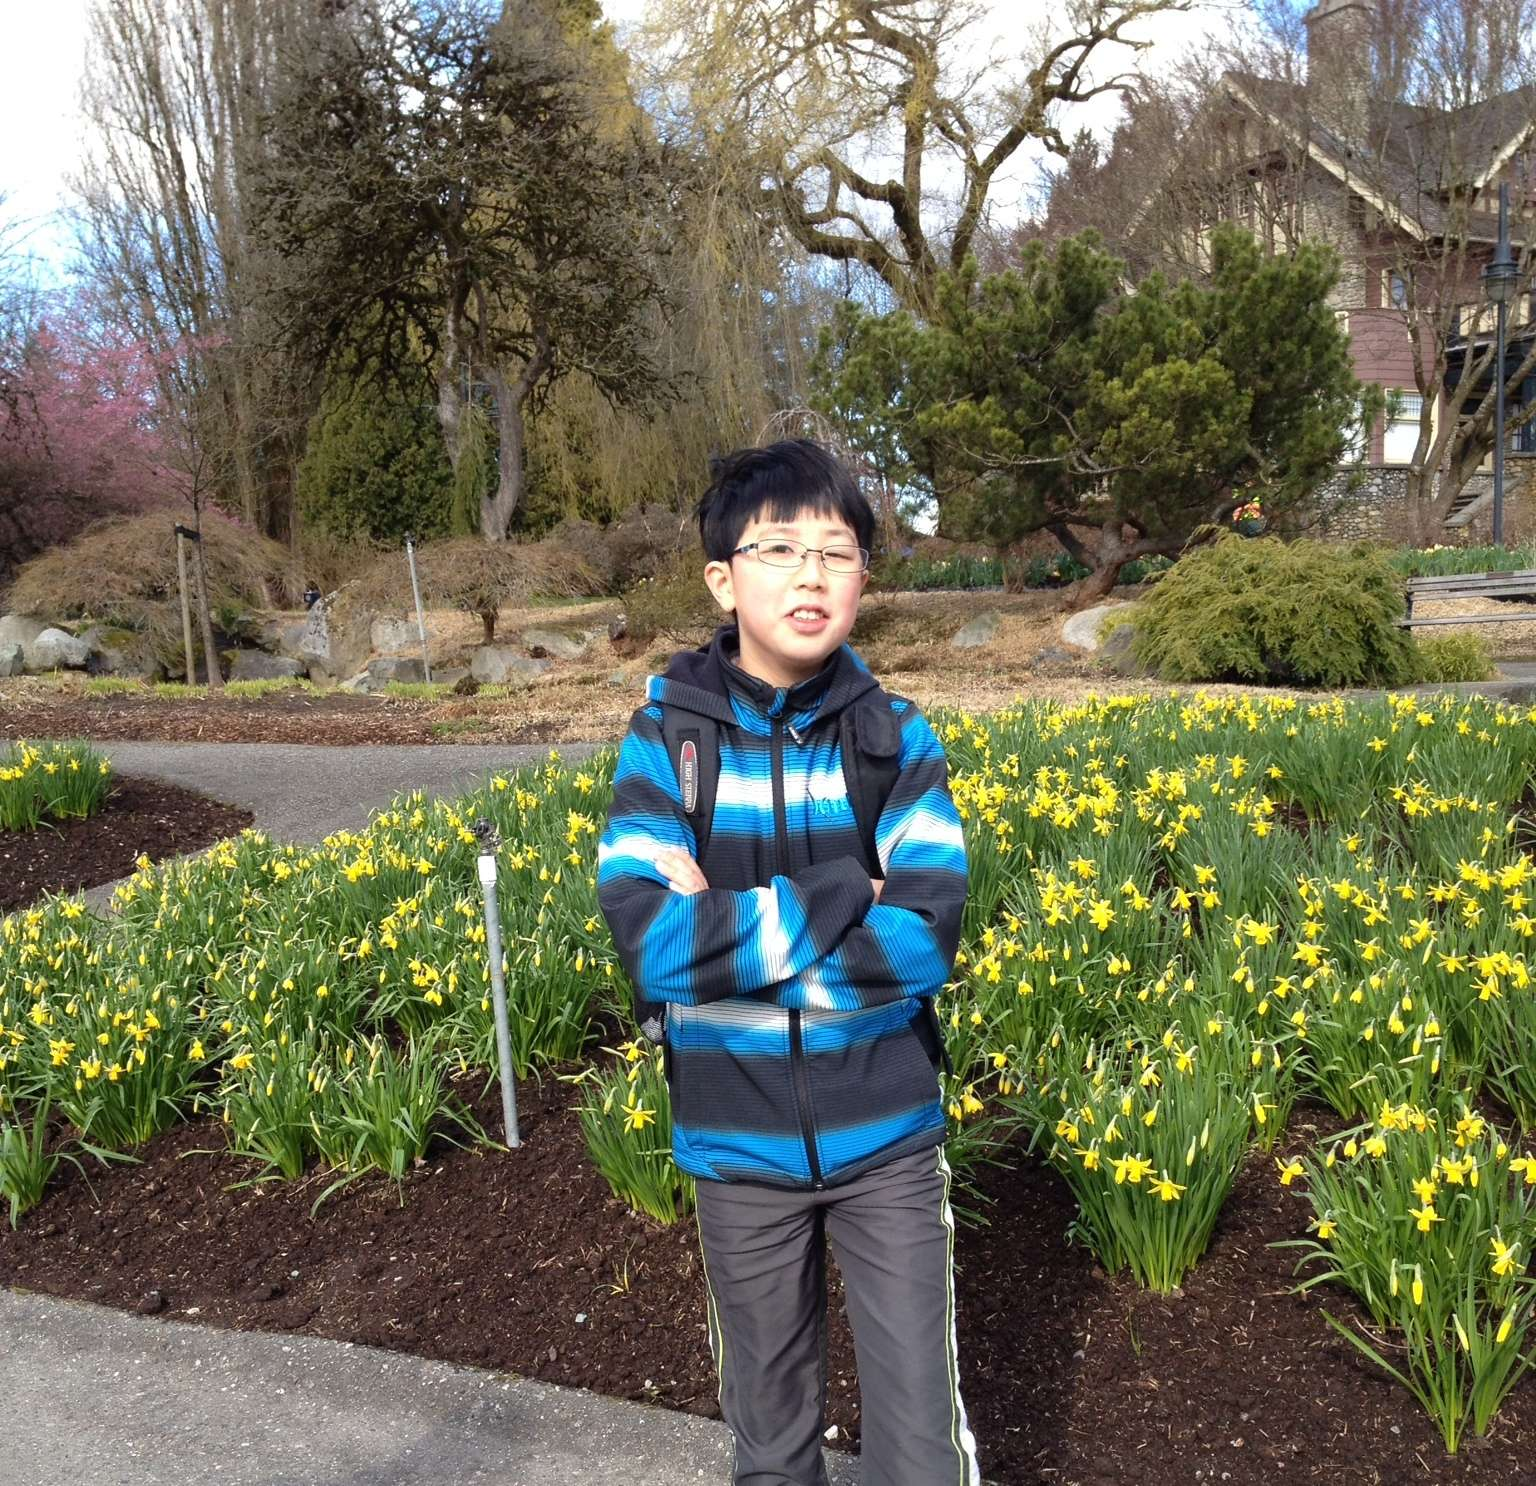 I built a habit to have fellowship with God every day! – Jeffrey Chow, Grade 6